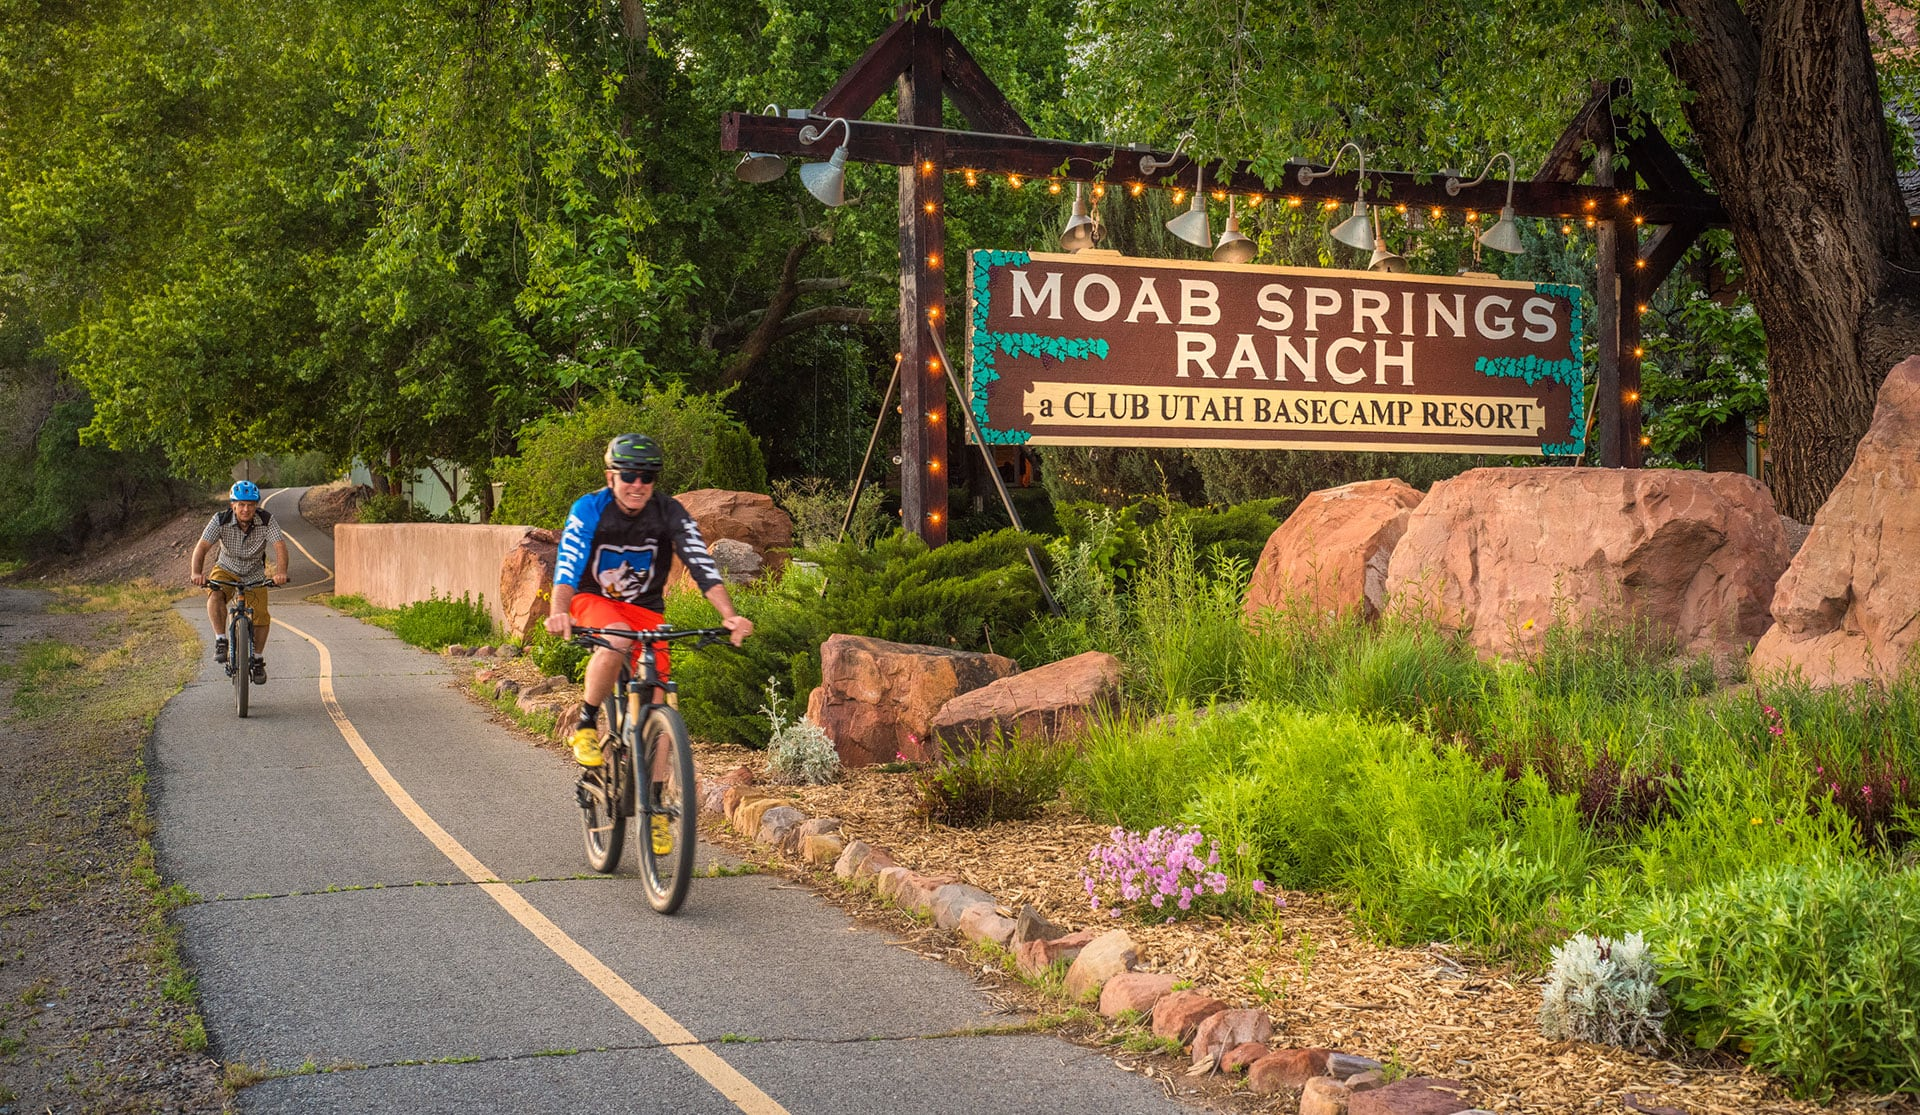 Two male bicyclists ride past canopies of green leaves from tall cottonwood trees, multi colored flora, large sandstone boulders and the rectangular Moab Springs Ranch sign.